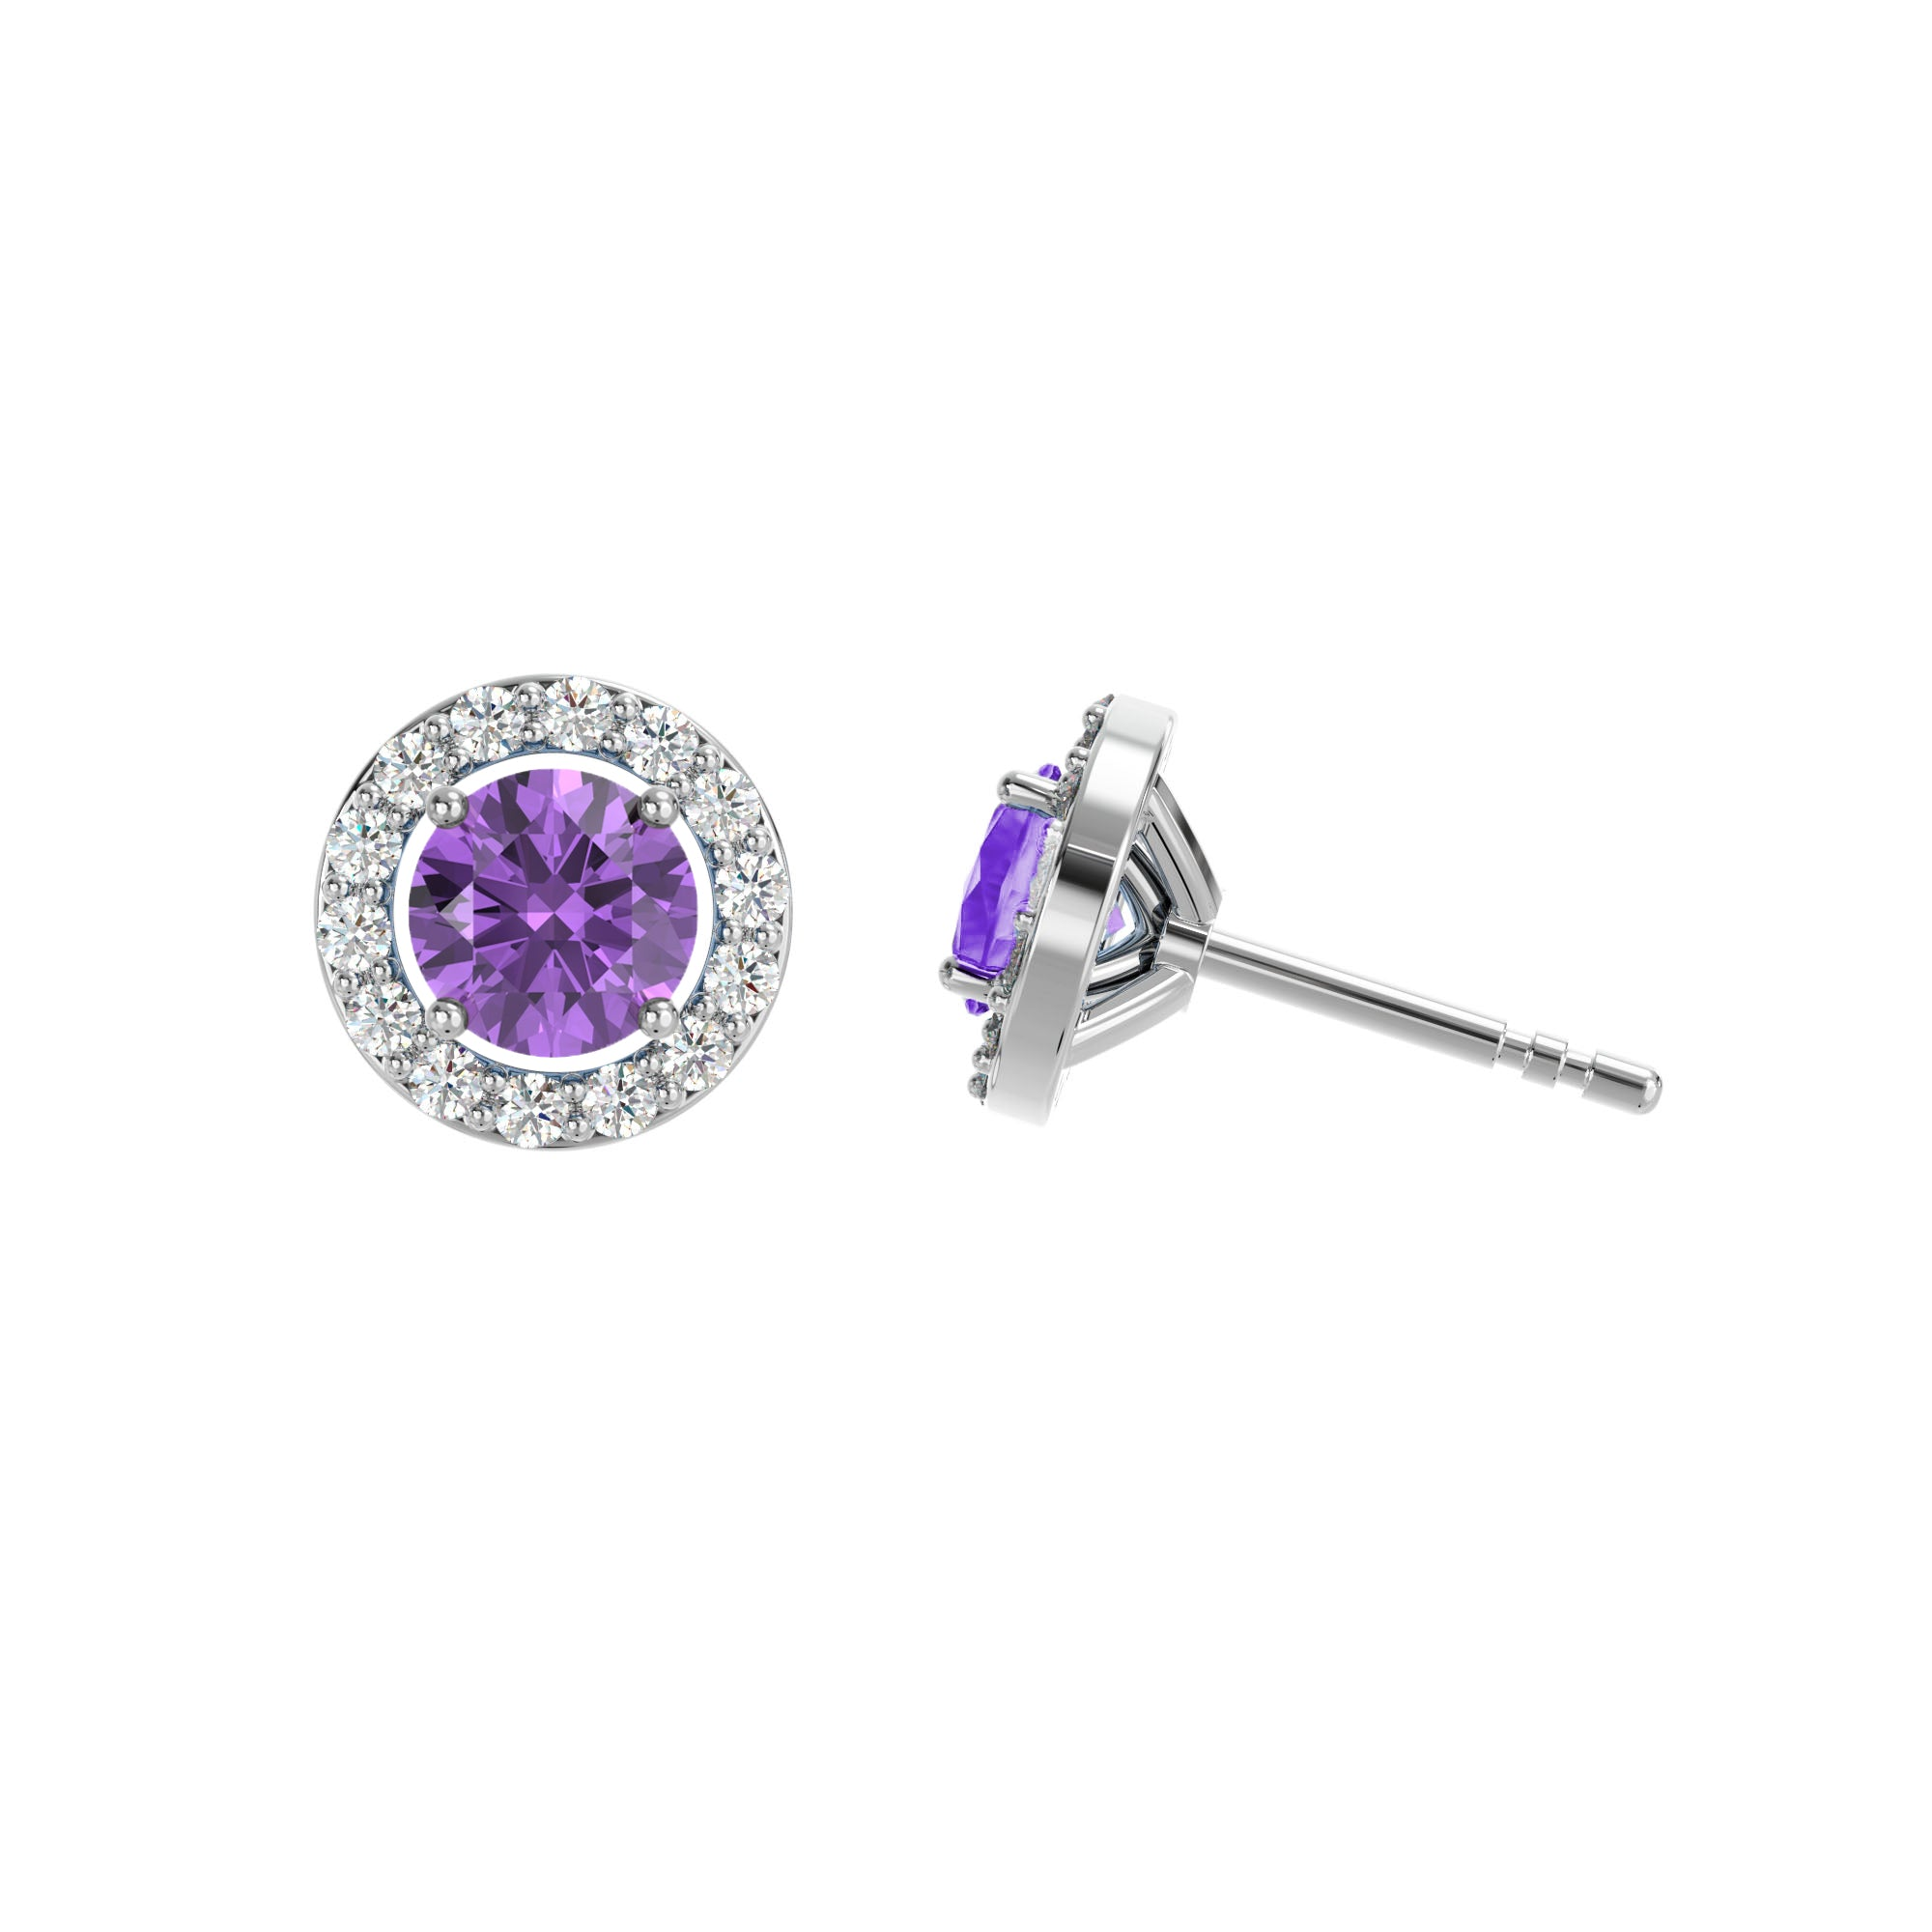 925 Silver Luxe Series Earring - Lydia (Amethyst)